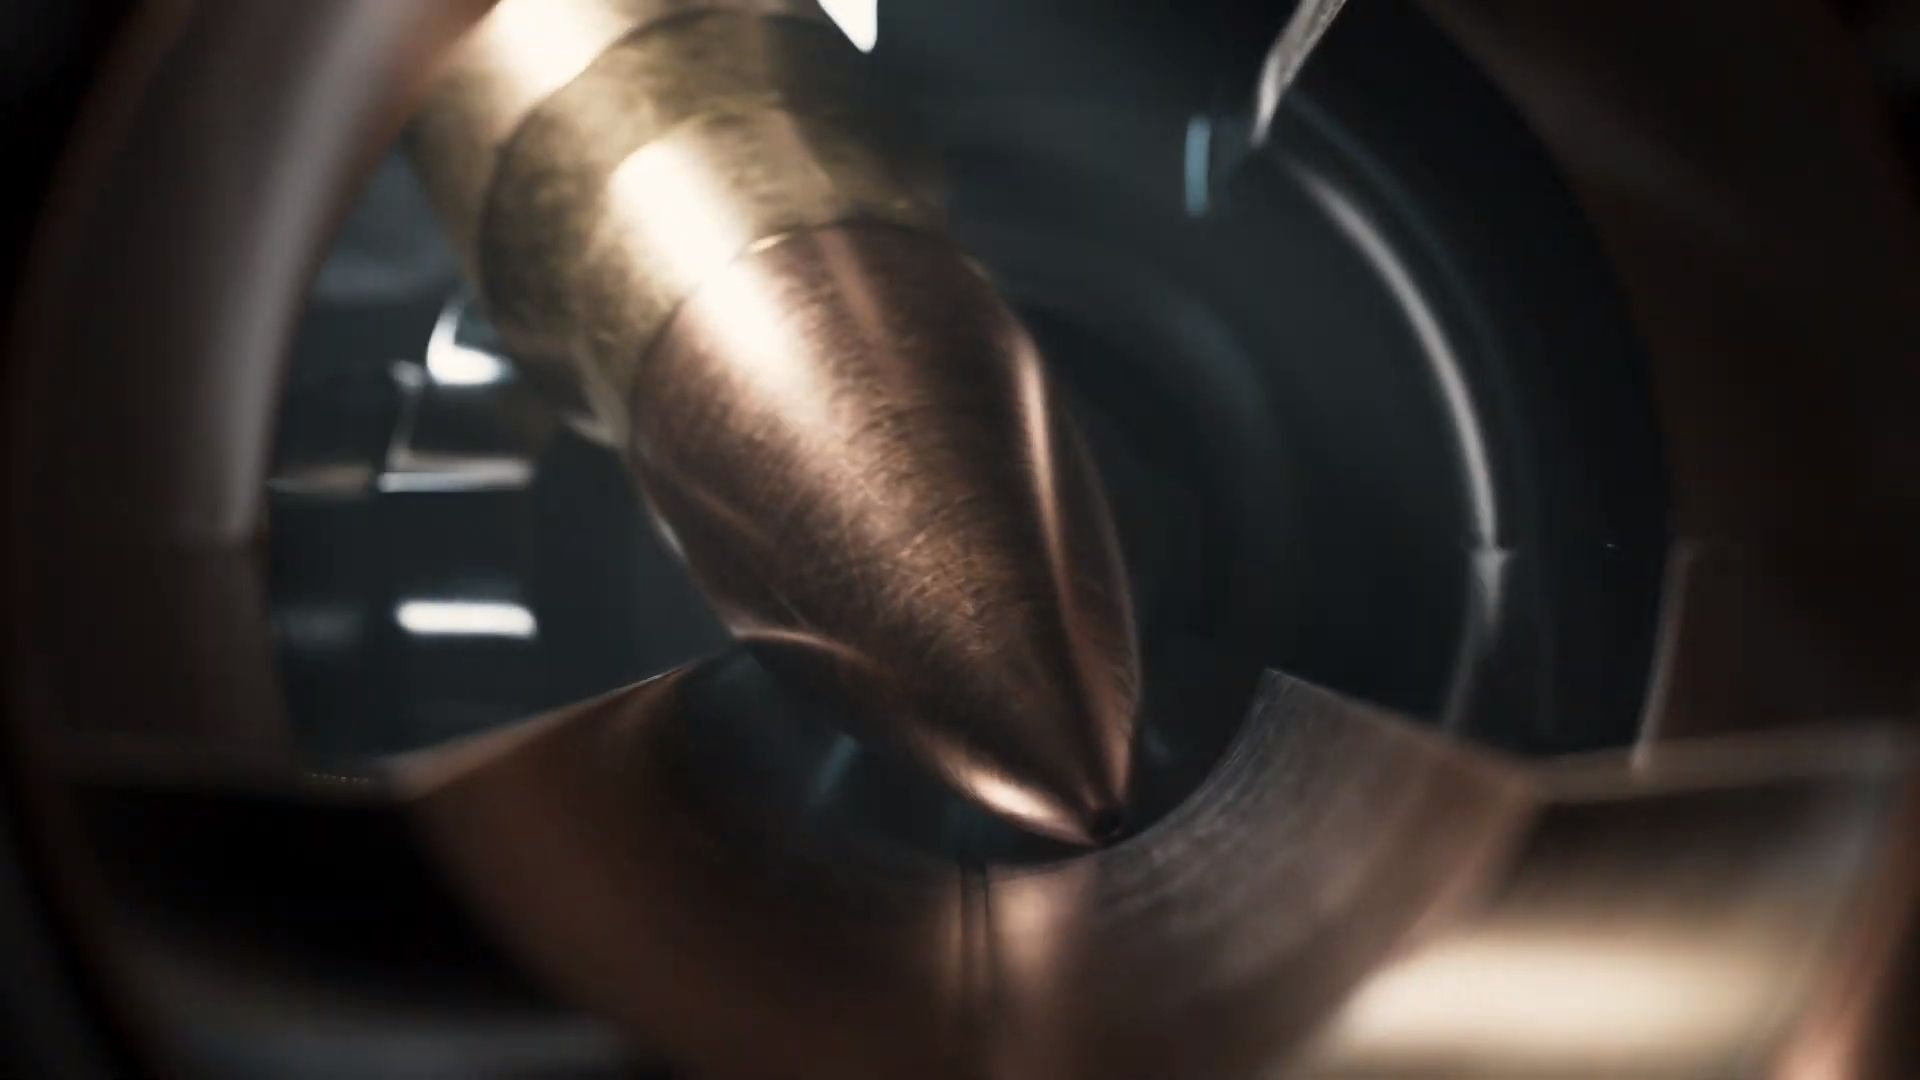 A rifle bullet being loaded in the Project 007 teaser.